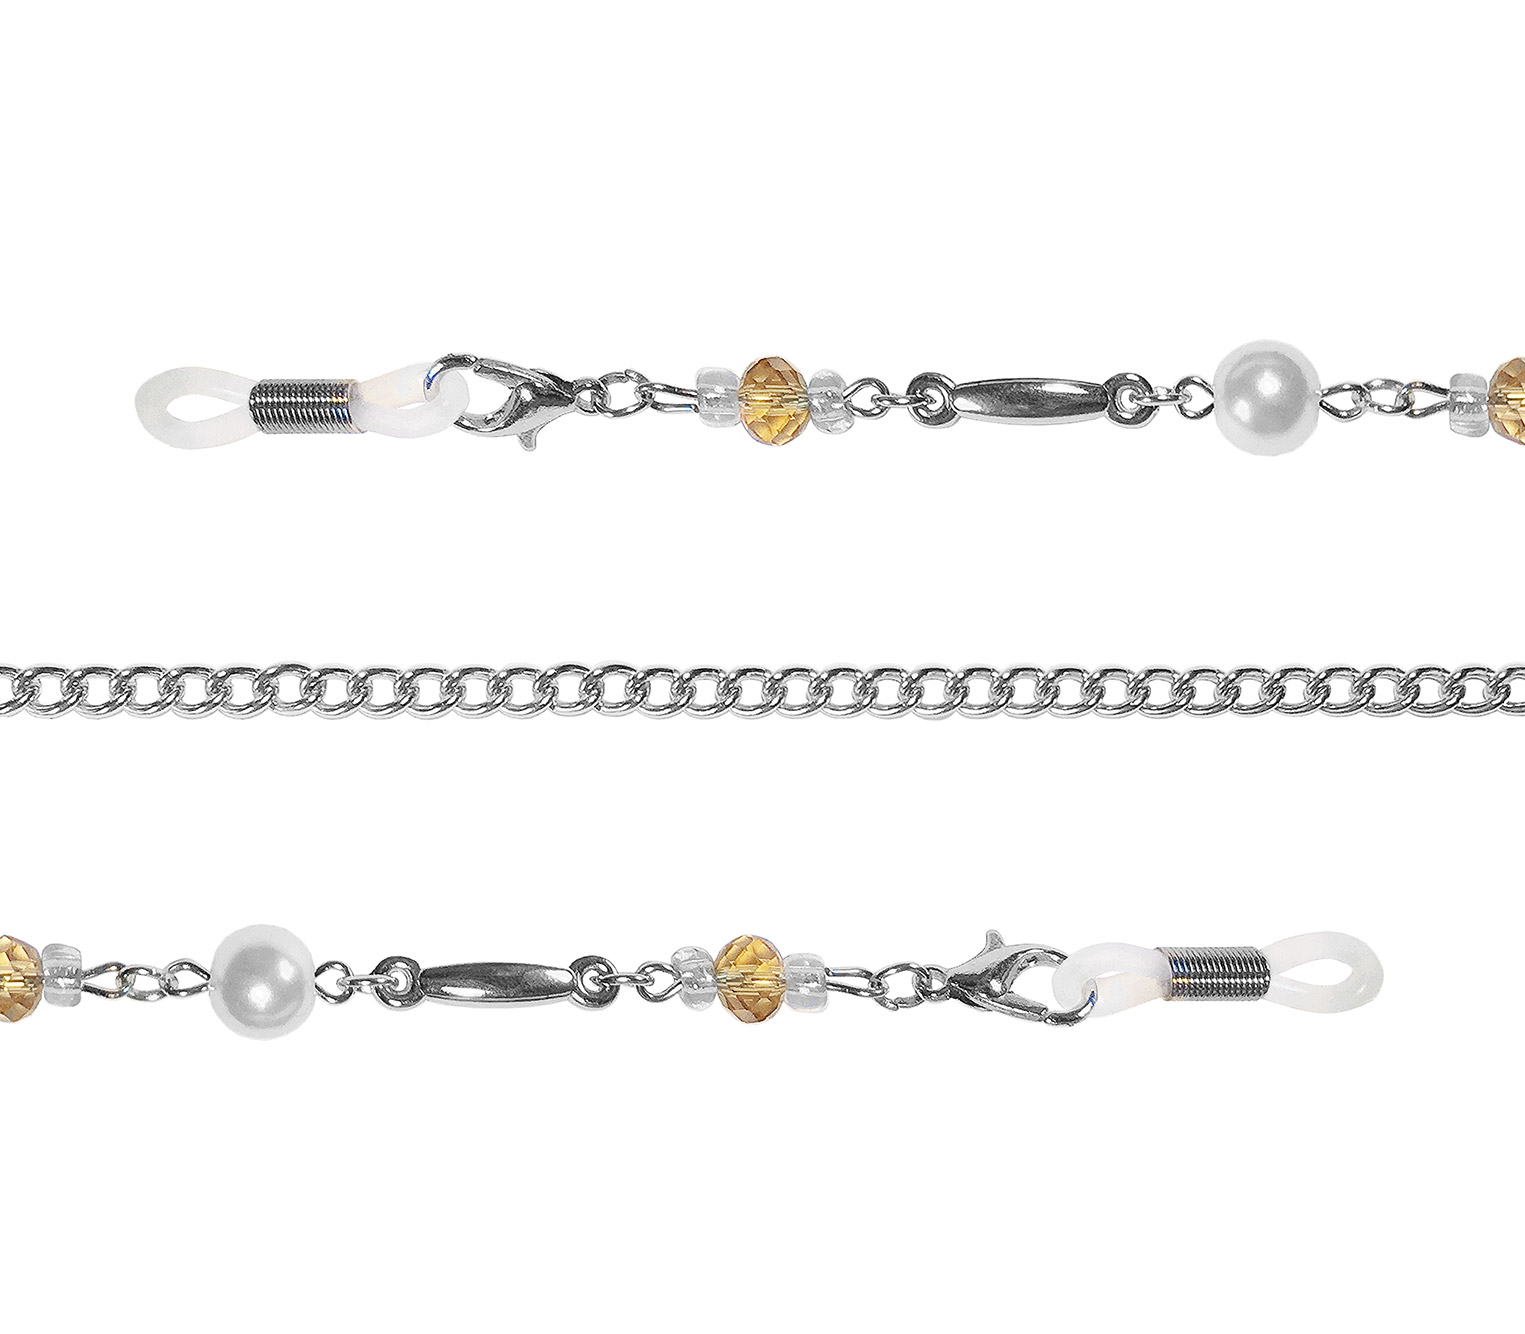 Main Image (Angle) - Reflex (Silver) Glasses Chains Accessories